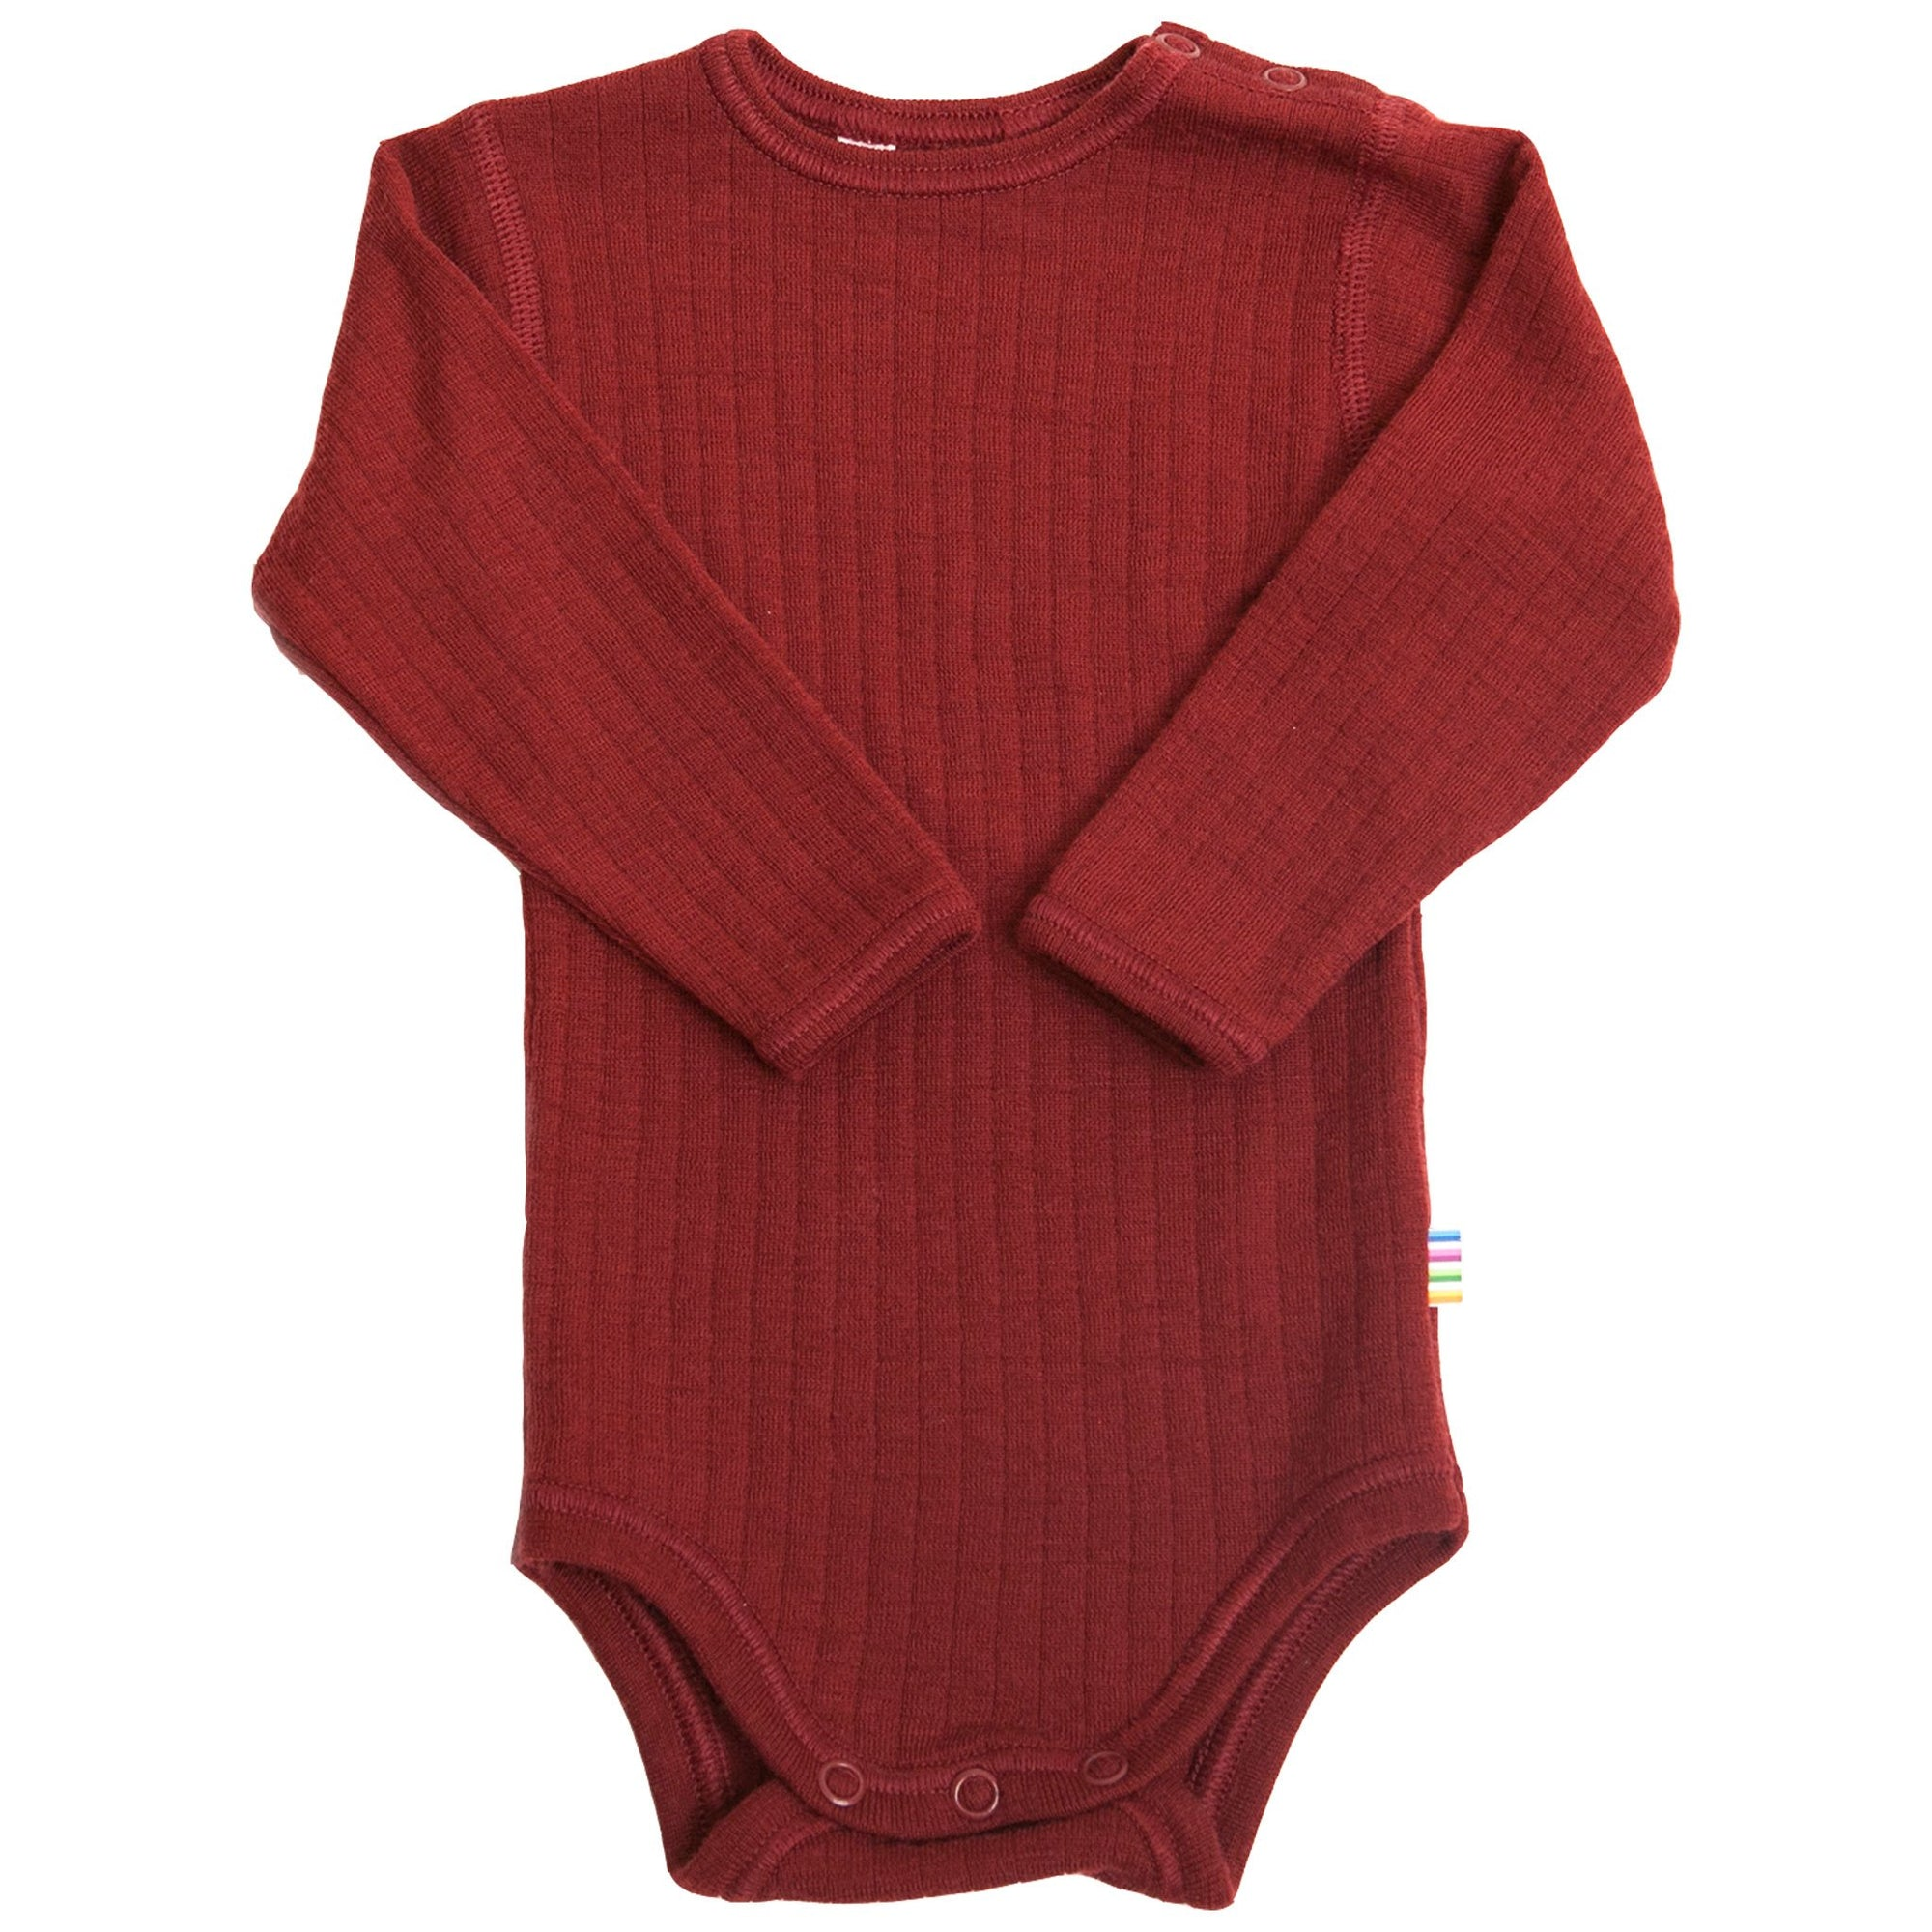 Body Joha din lână merinos - Basic Crimson Red-Joha-HipHip.ro